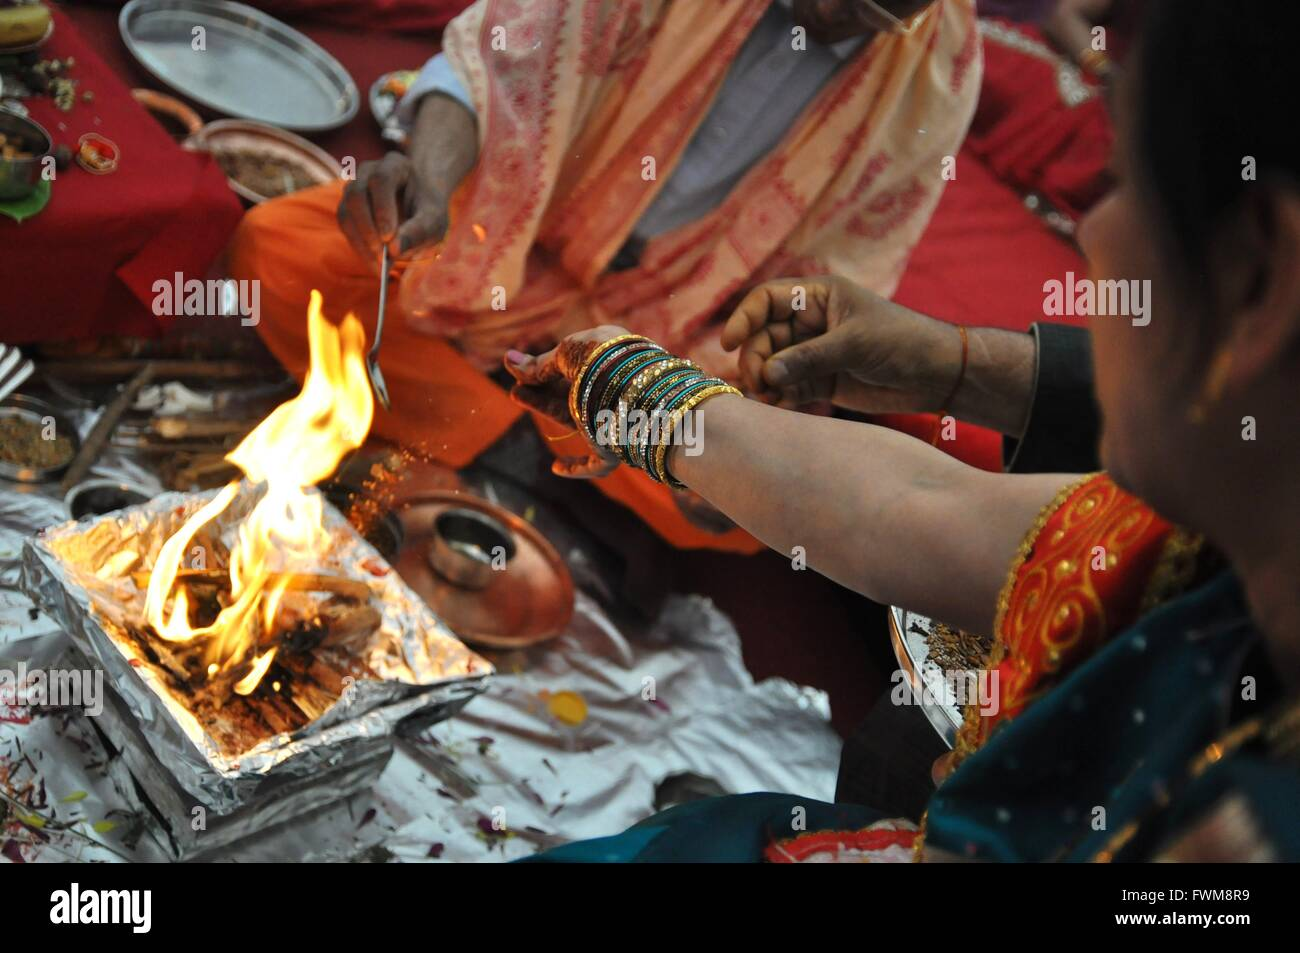 Bride And Groom Performing Rituals At Wedding - Stock Image